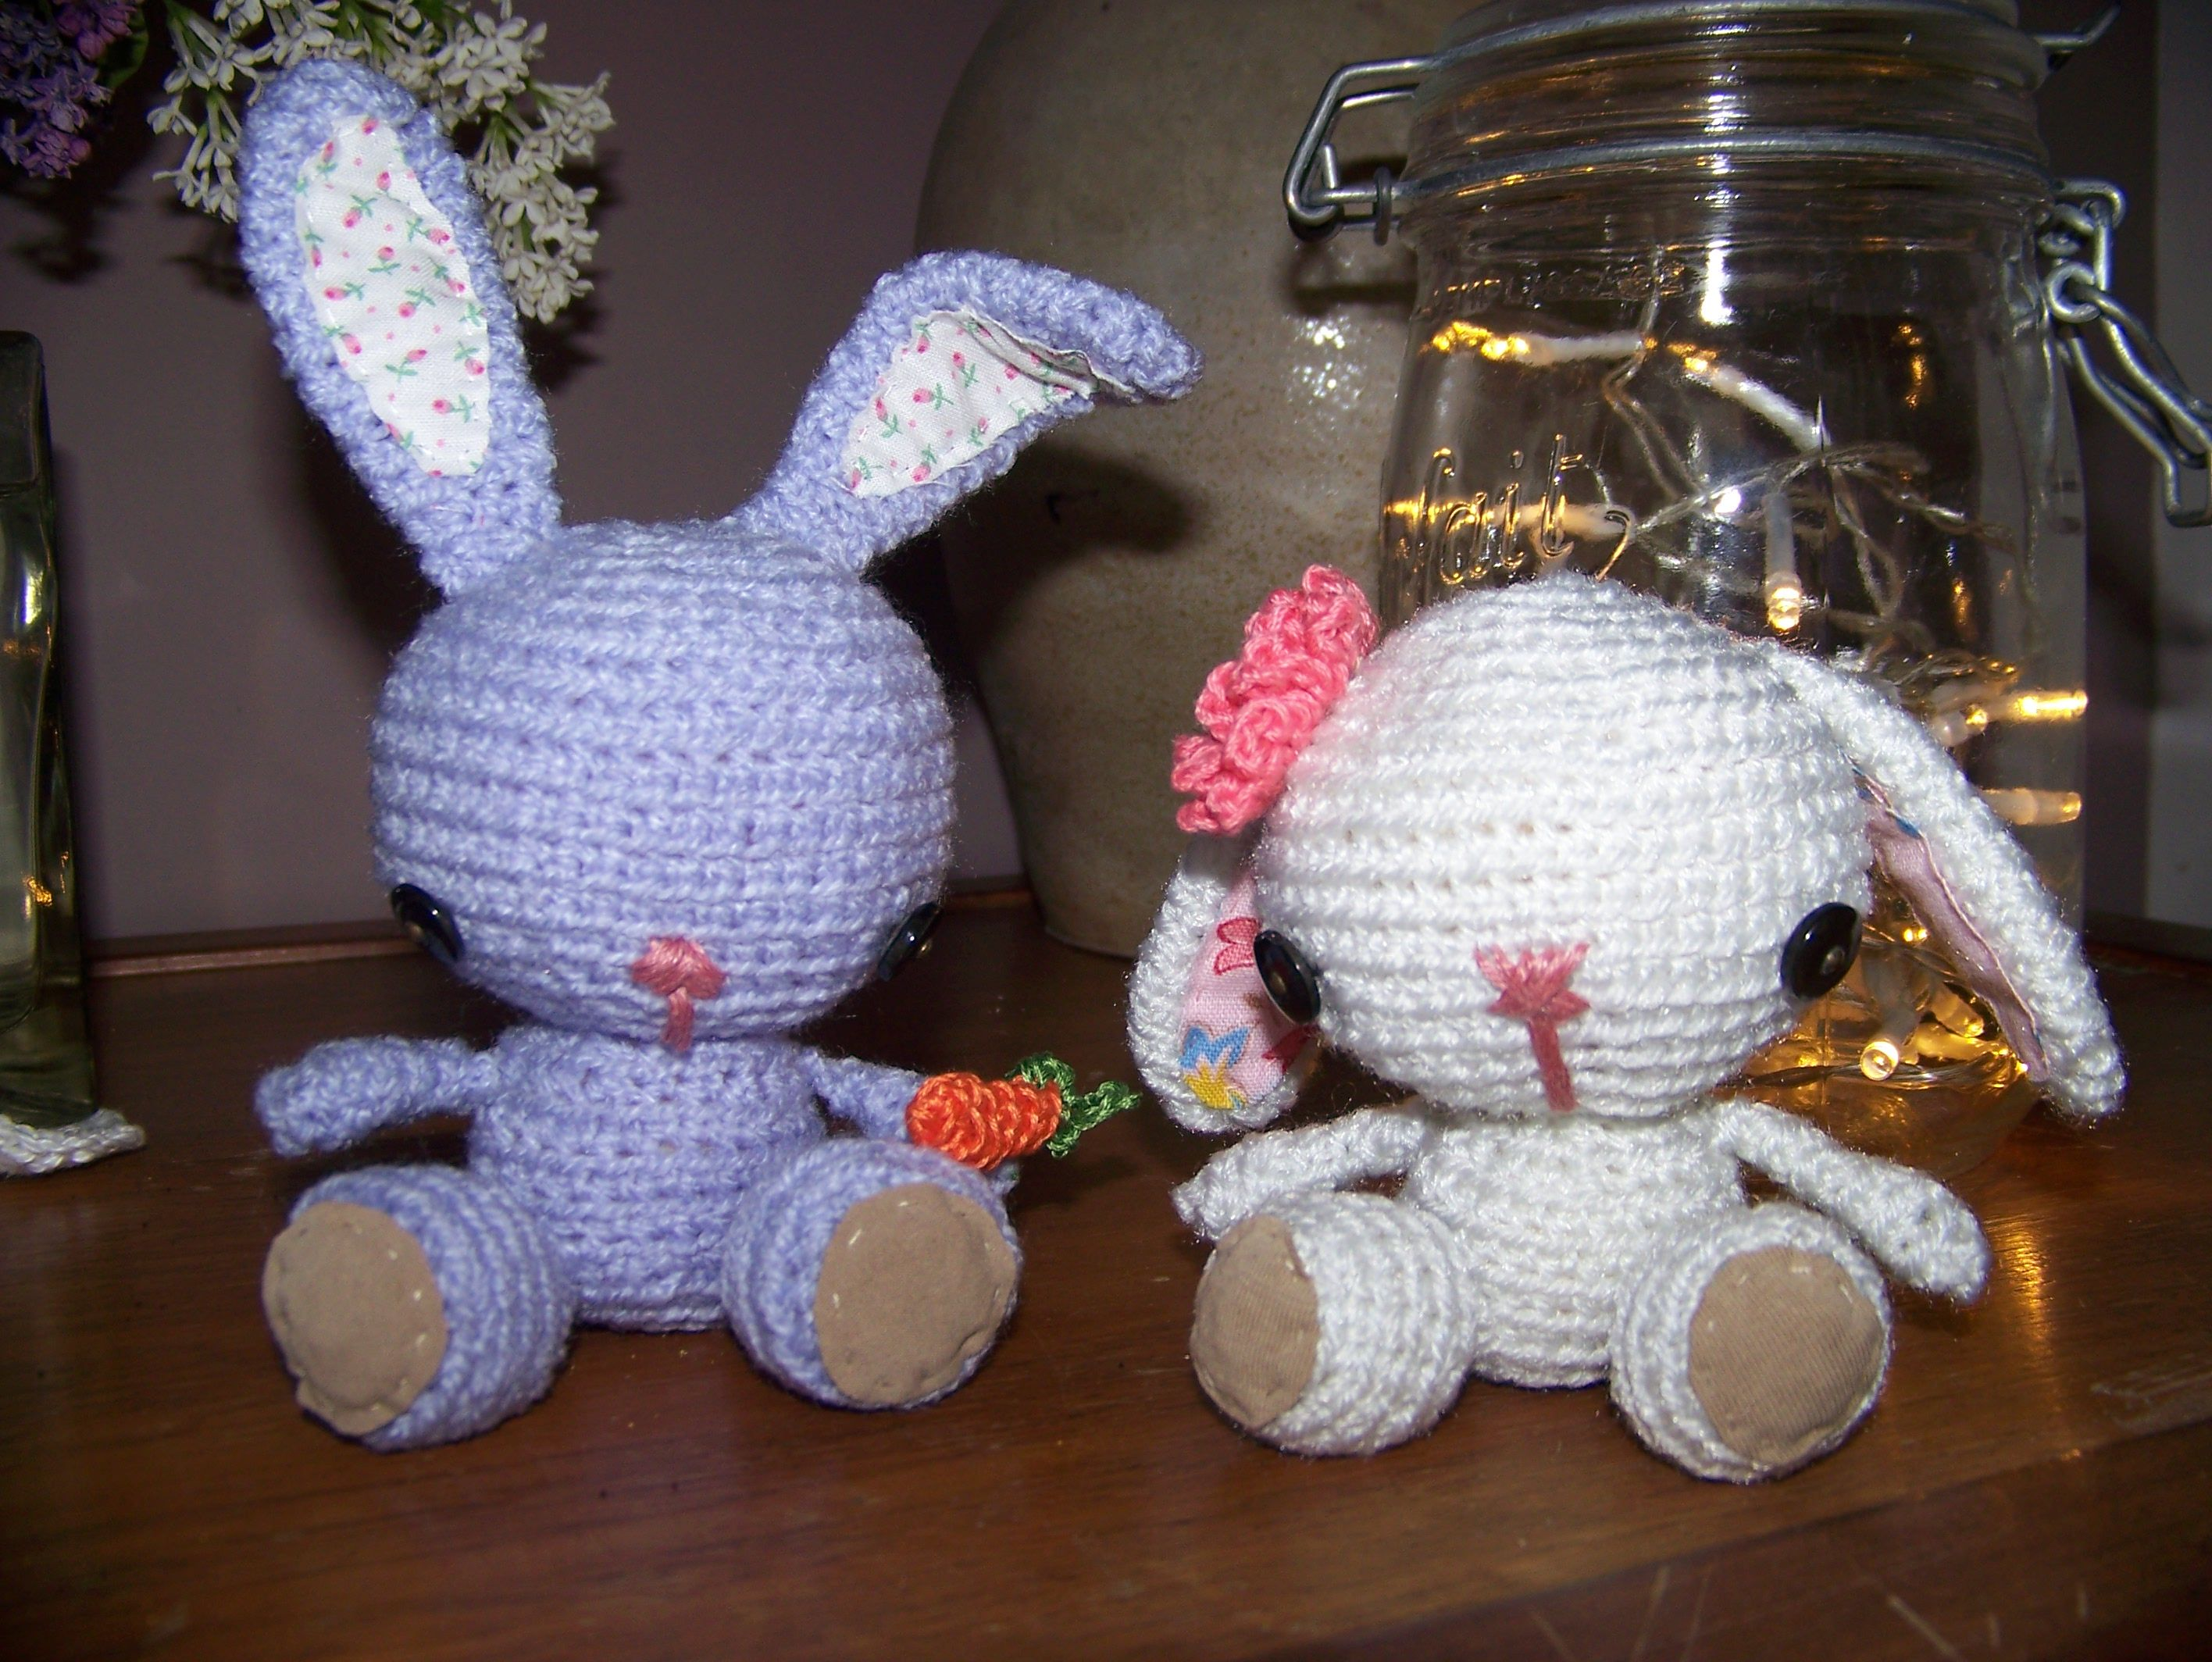 amigurumi lapin - Made by Miloute